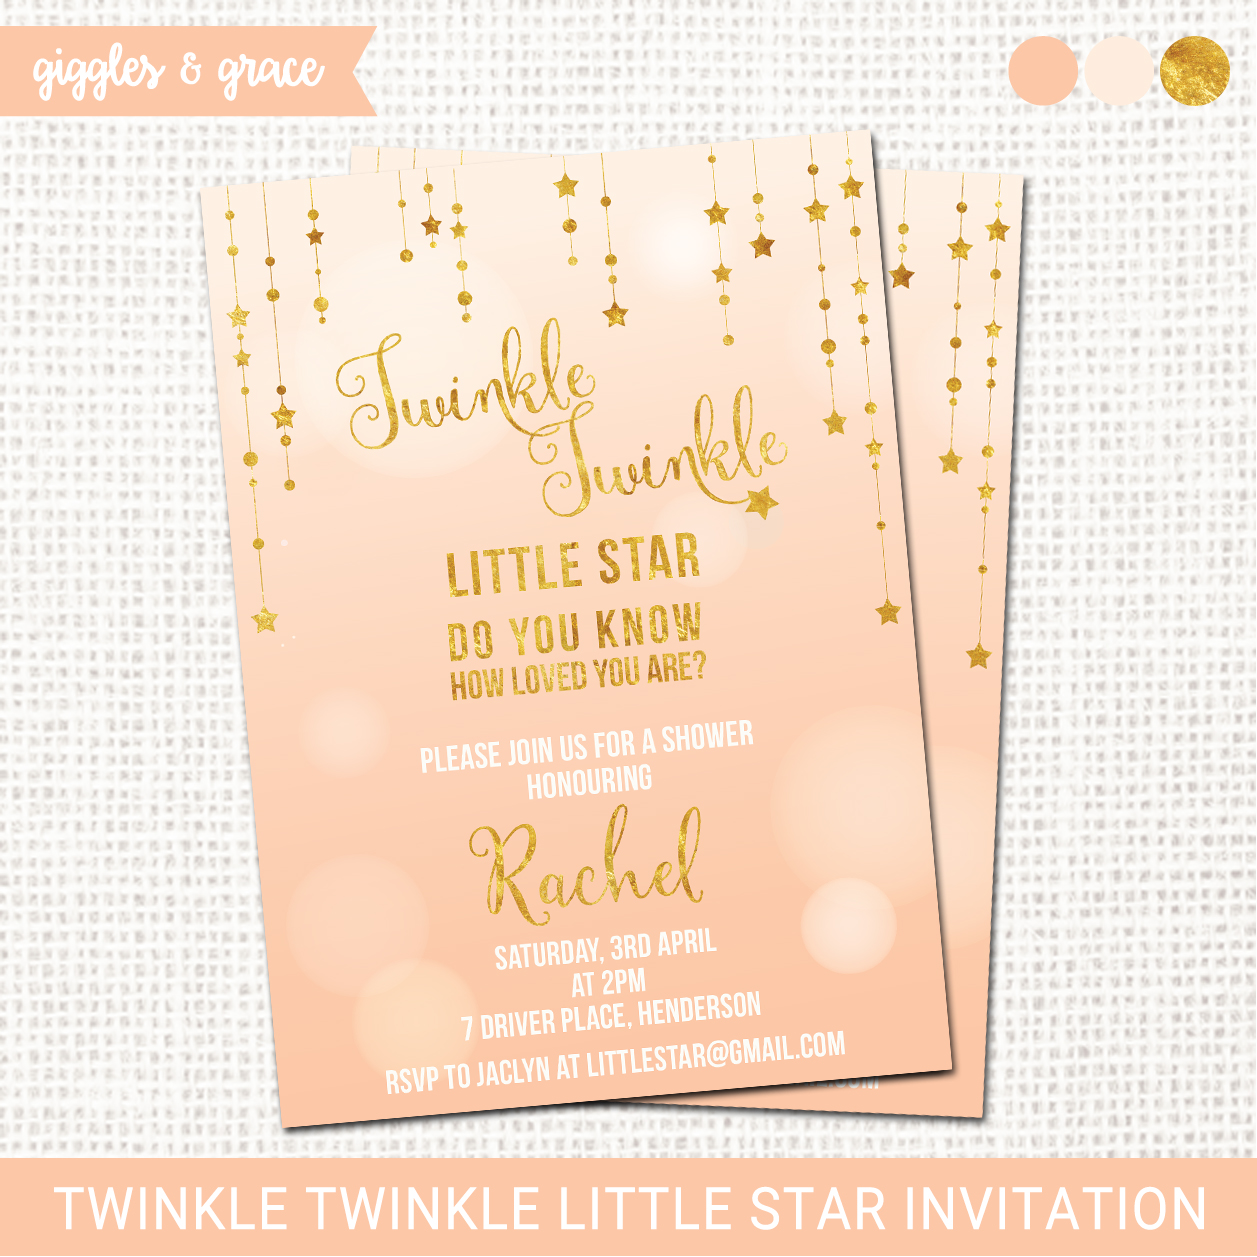 Twinkle Twinkle little star invitation - Giggles and Grace Designs